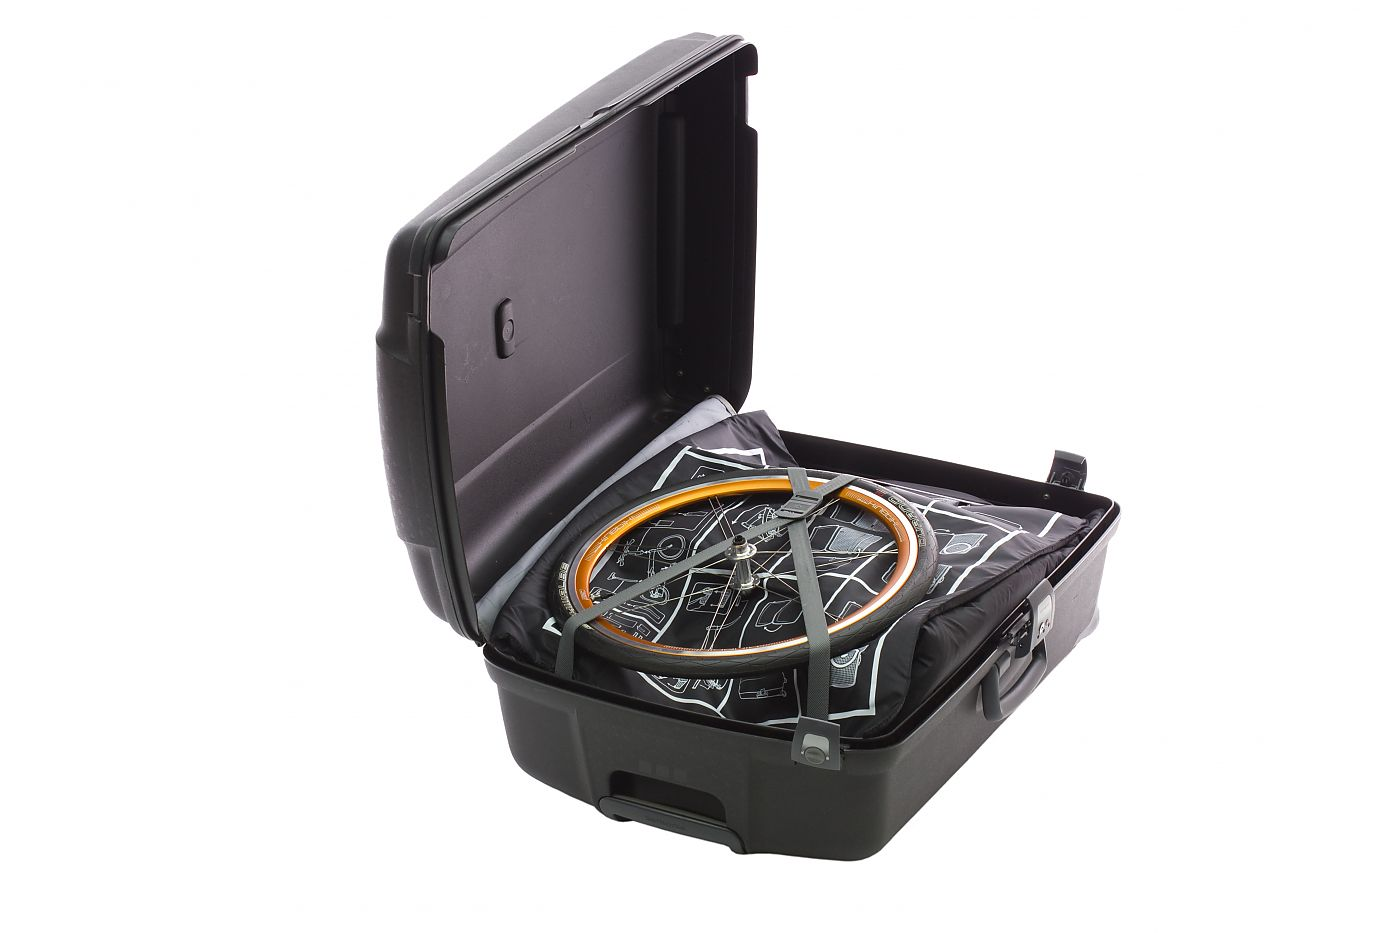 Tern Kit Allows Bike To Be Packed In Standard Suitcase